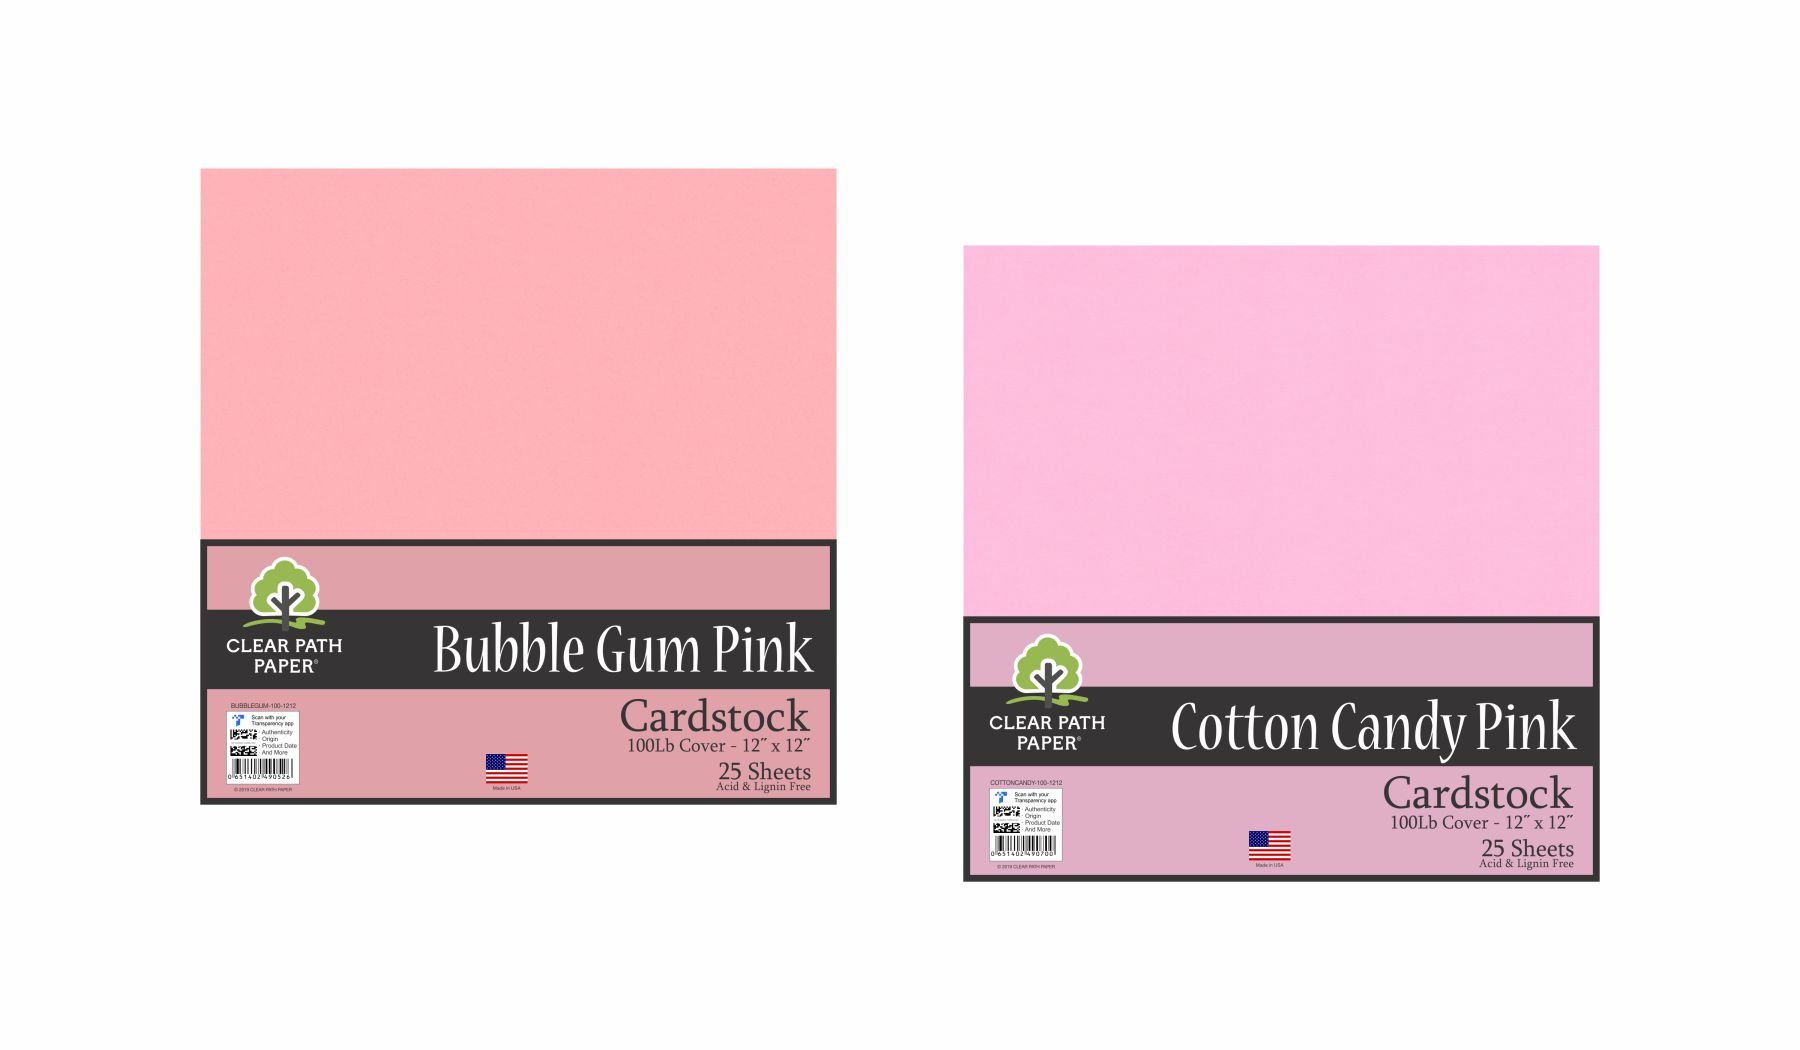 Image of the Cotton Candy Pink + Bubble Gum Pink #2 Bundle